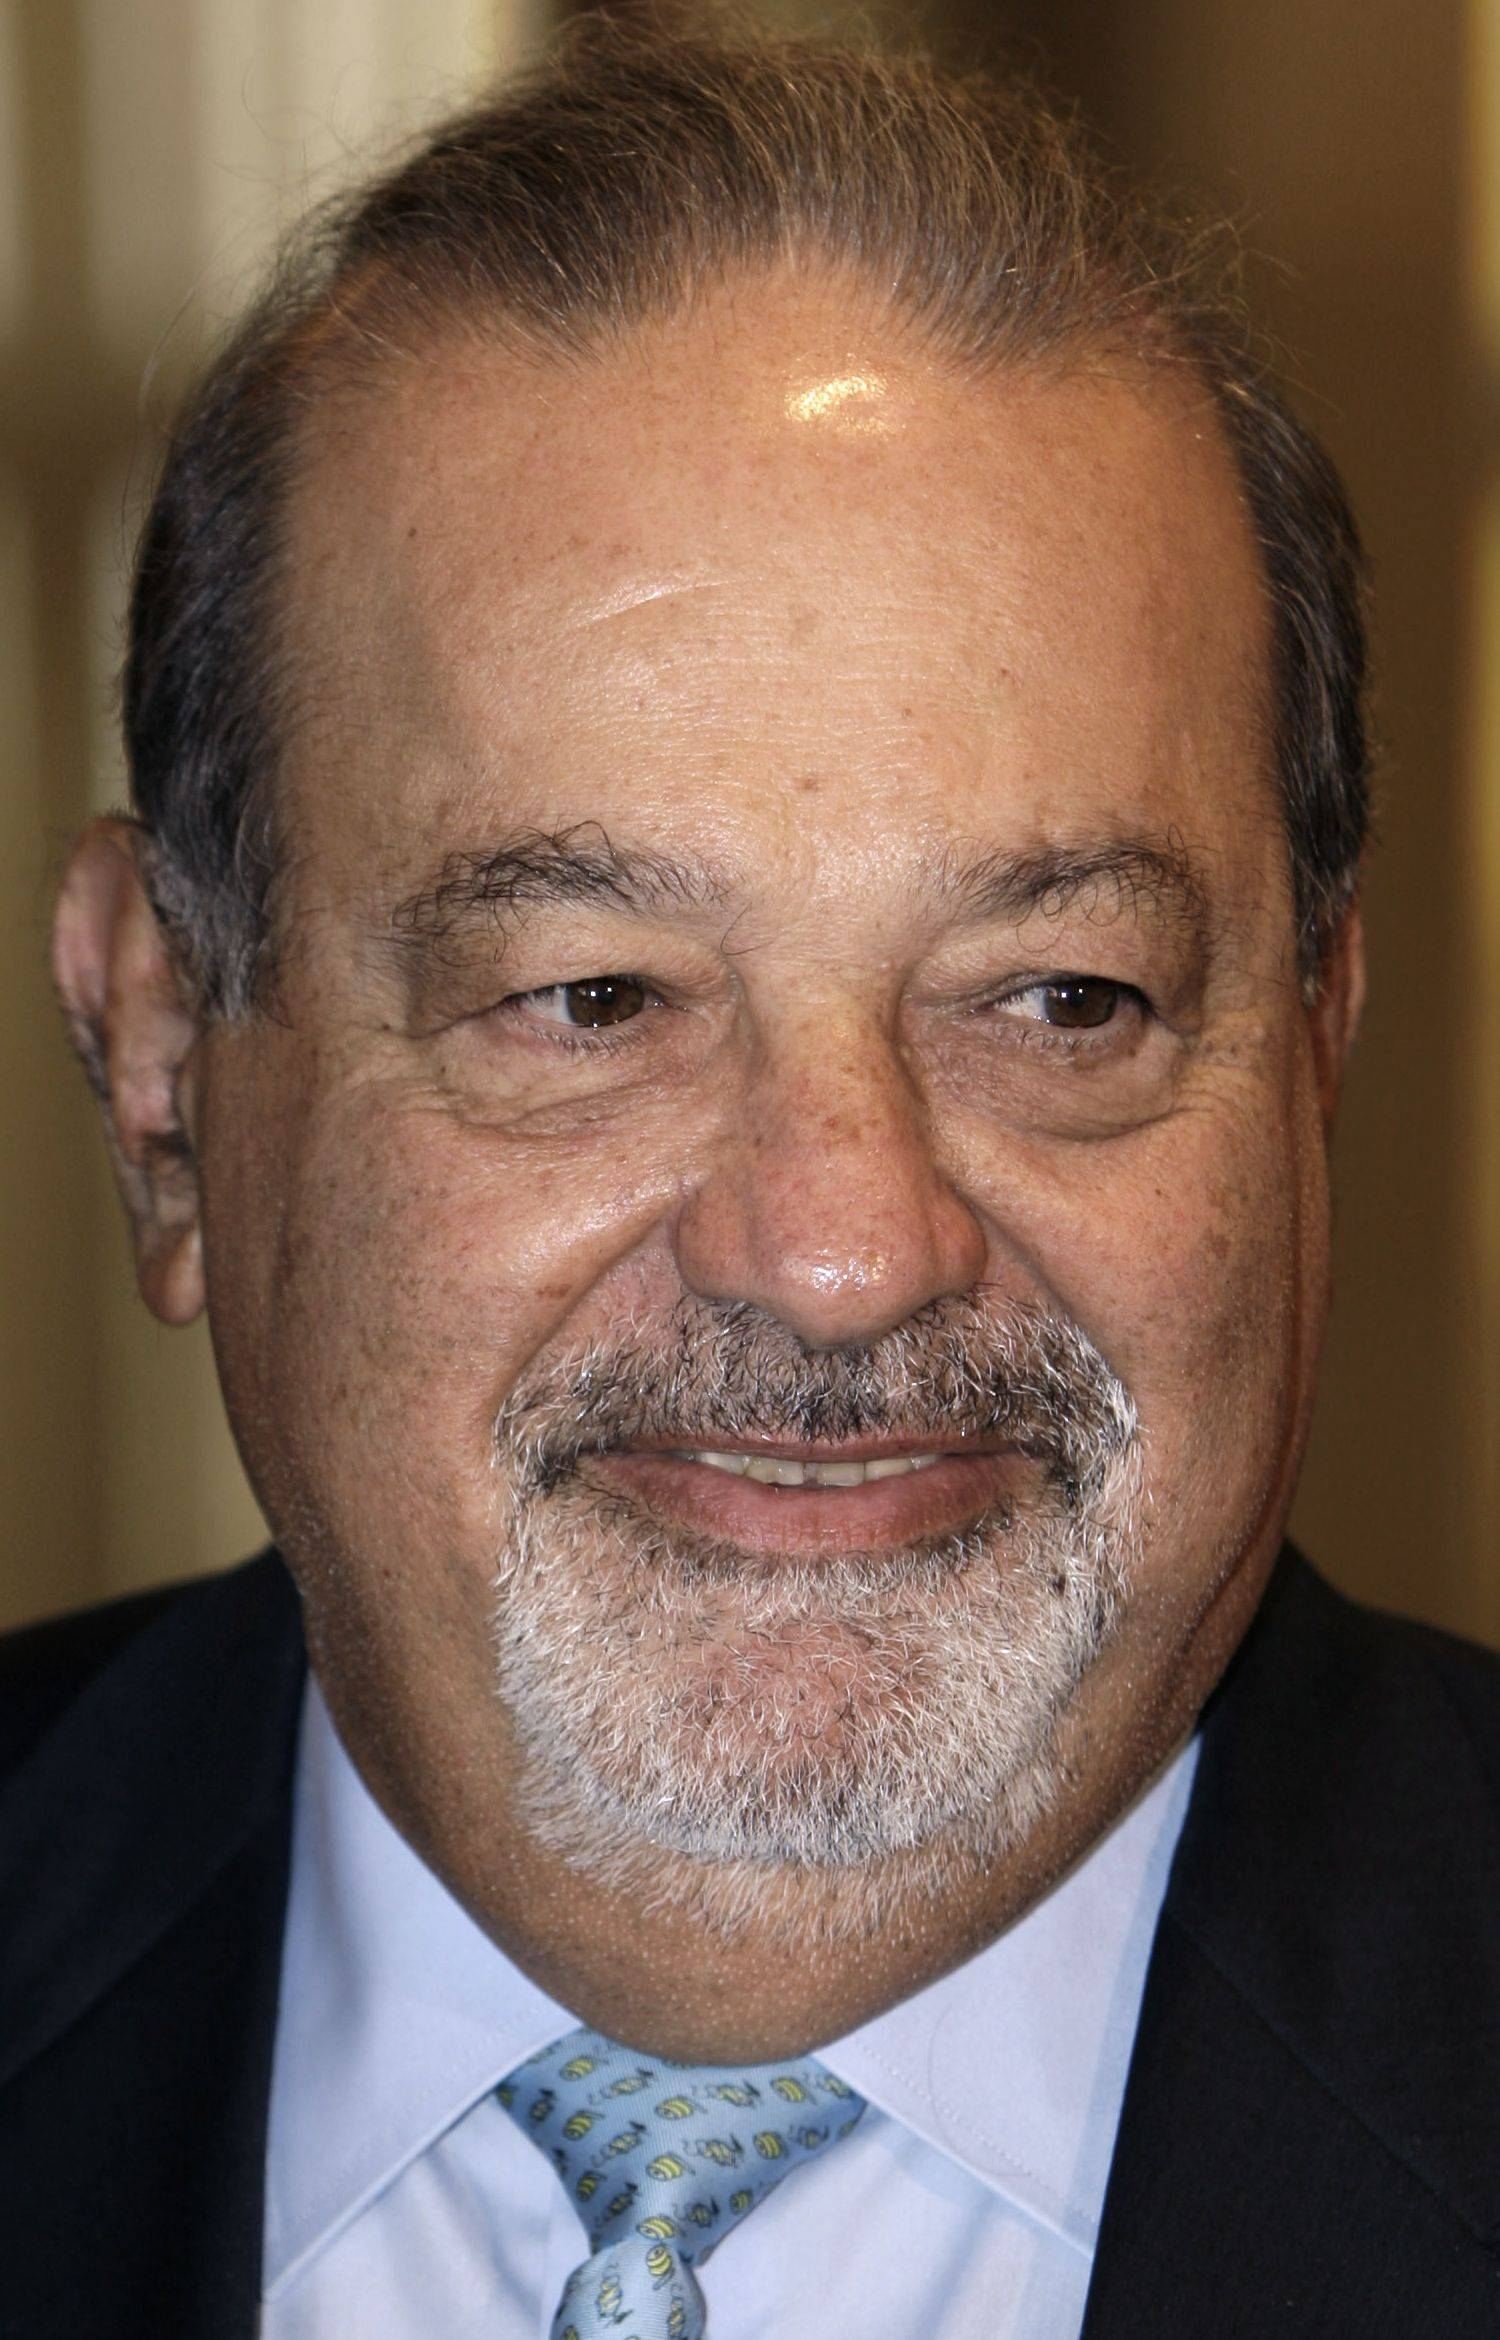 Mexican telecom tycoon Carlos Slim remained the world's richest person in 2012.